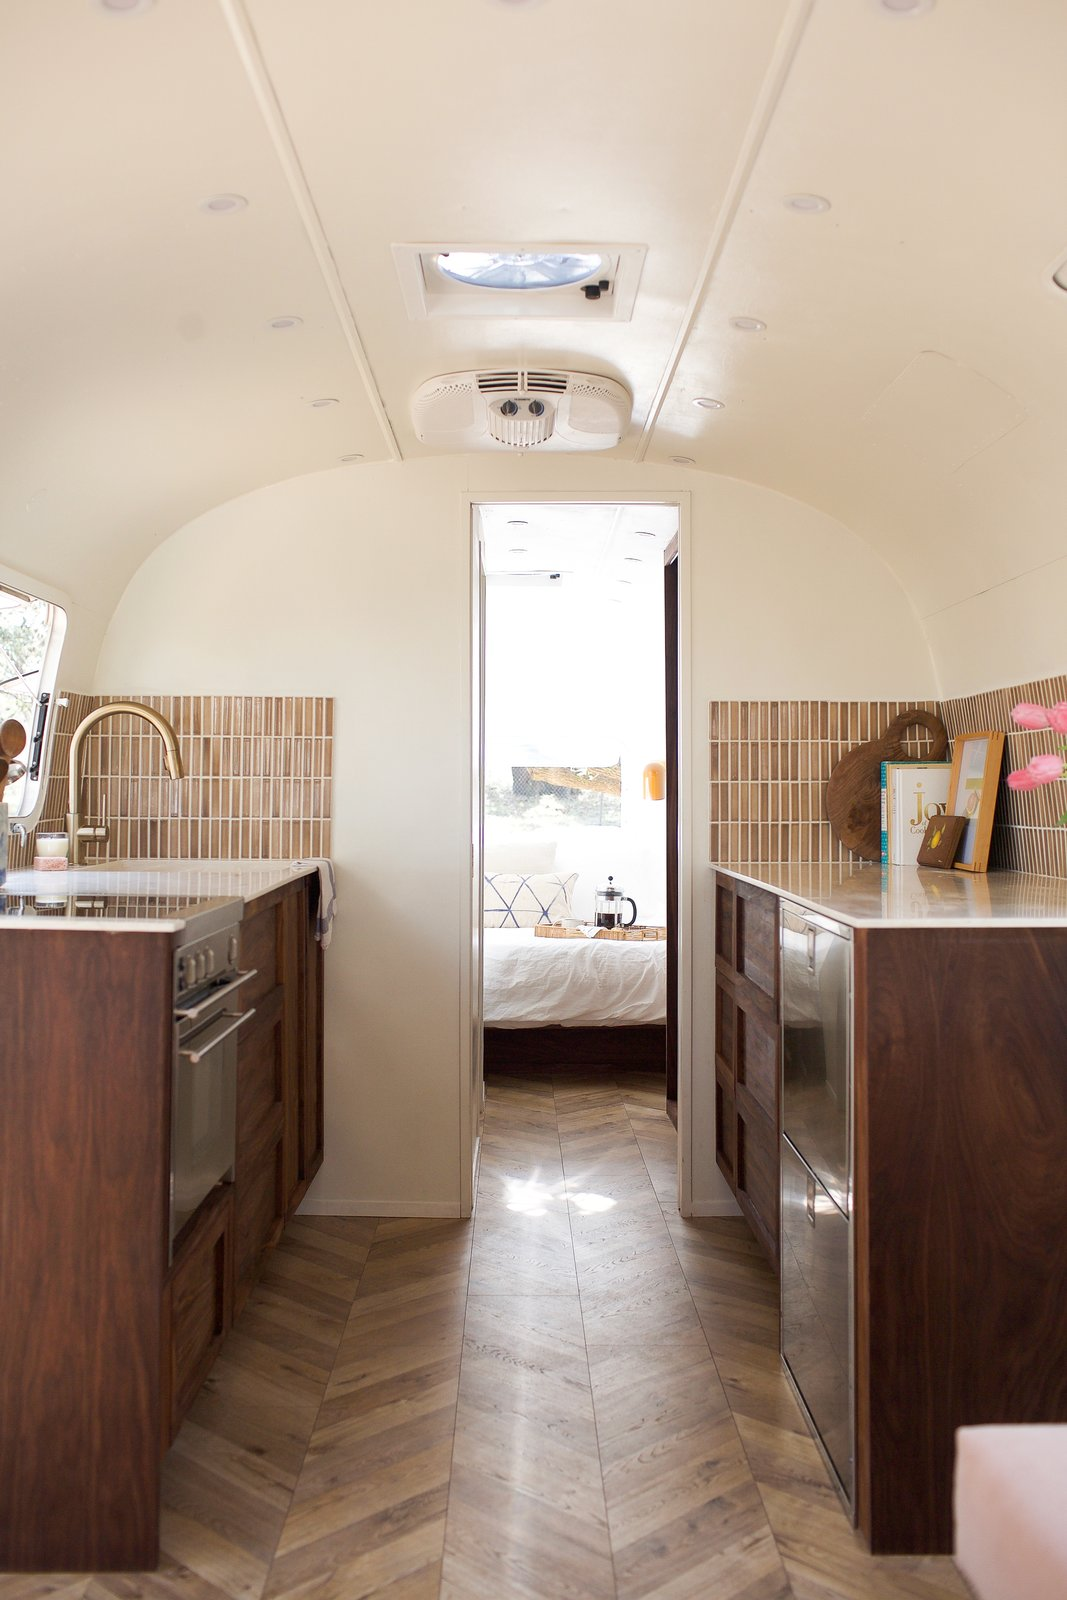 Kitchen, Marble, Ceramic Tile, Wood, Medium Hardwood, Refrigerator, Cooktops, Drop In, Wall Oven, and Recessed  Best Kitchen Cooktops Drop In Wall Oven Marble Photos from This Chic Camper Will Make You Want to Be an Airstream Dweller